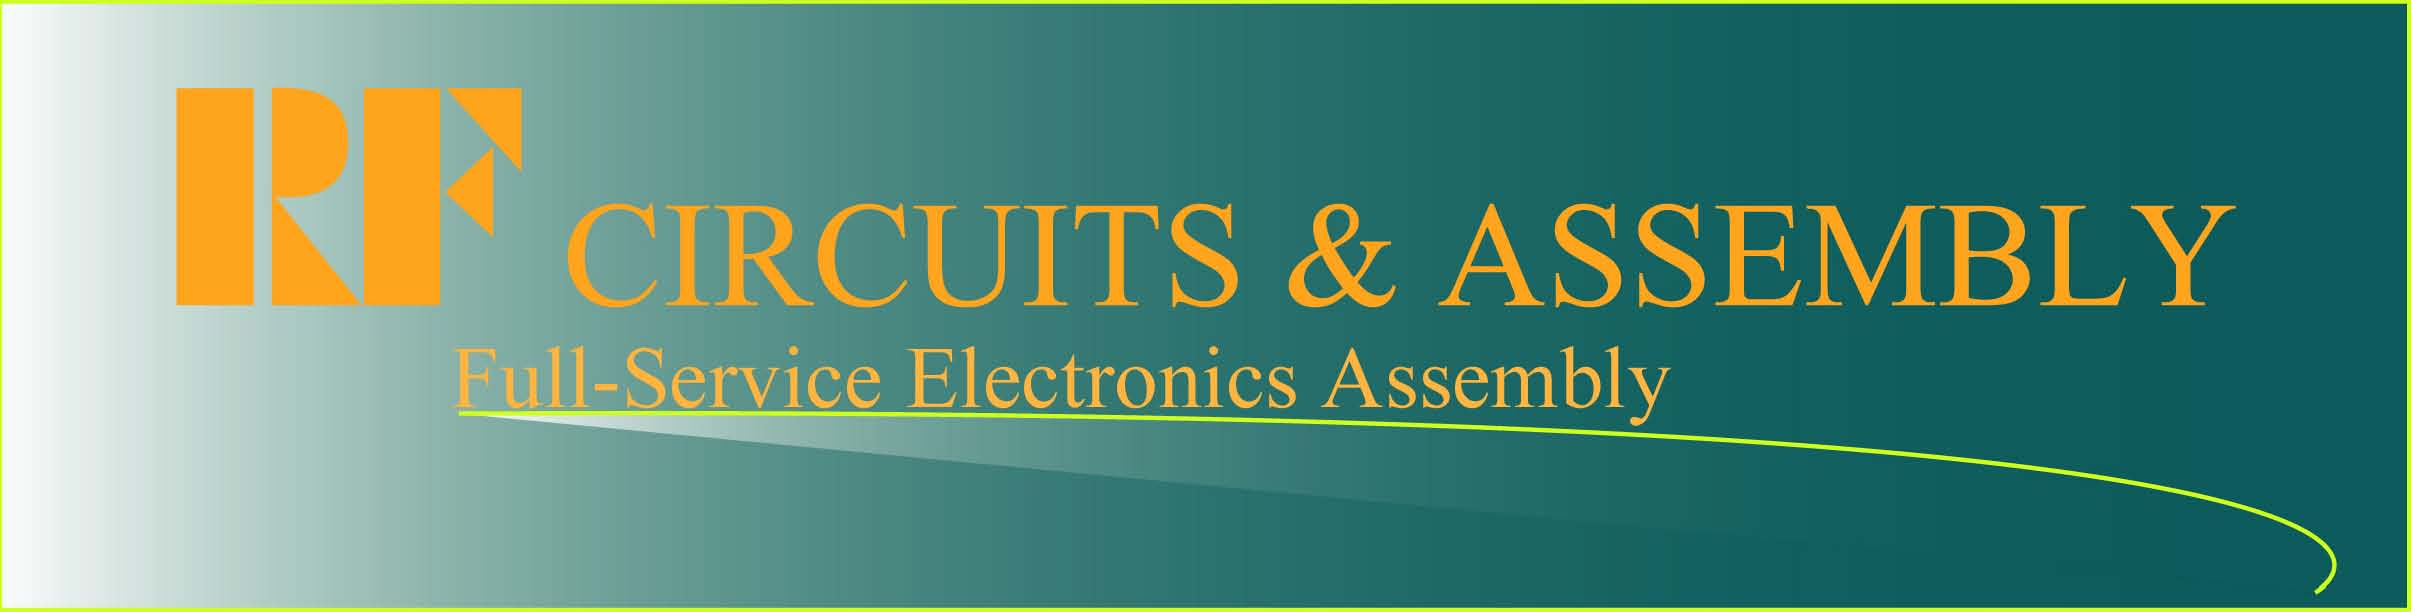 Welcome to RF Circuits And Assembly, Inc